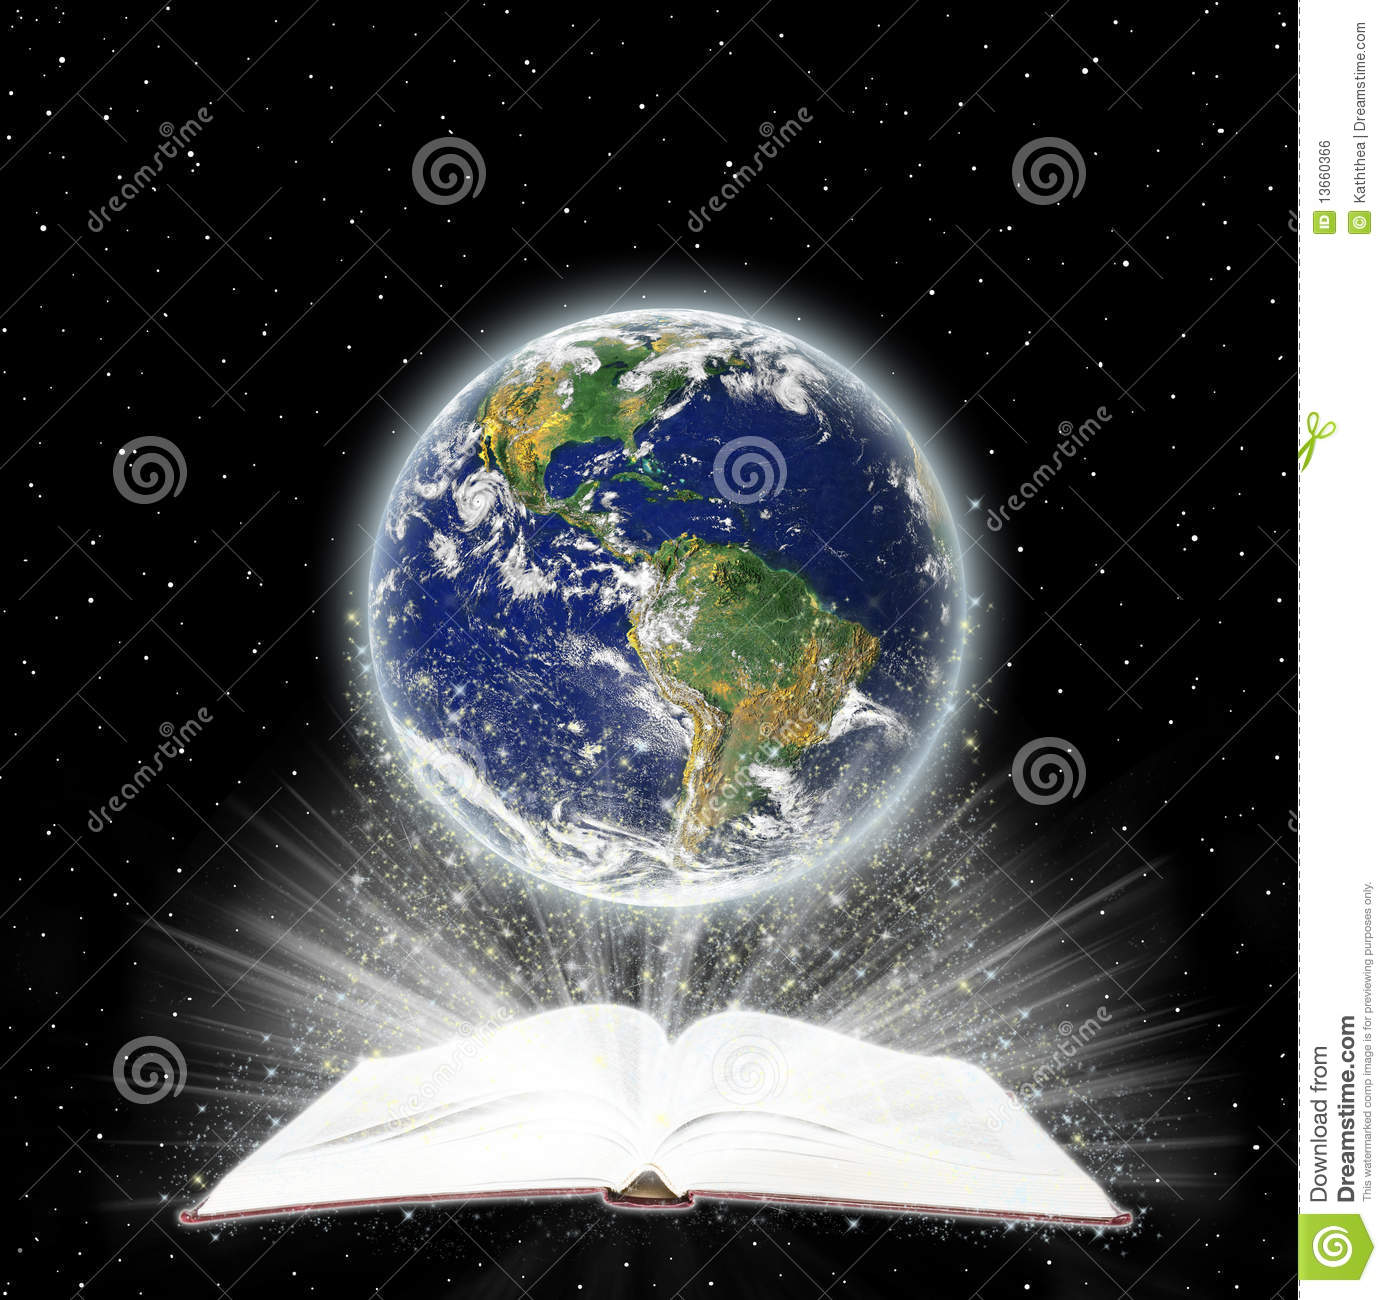 The Holy Book and the Globe